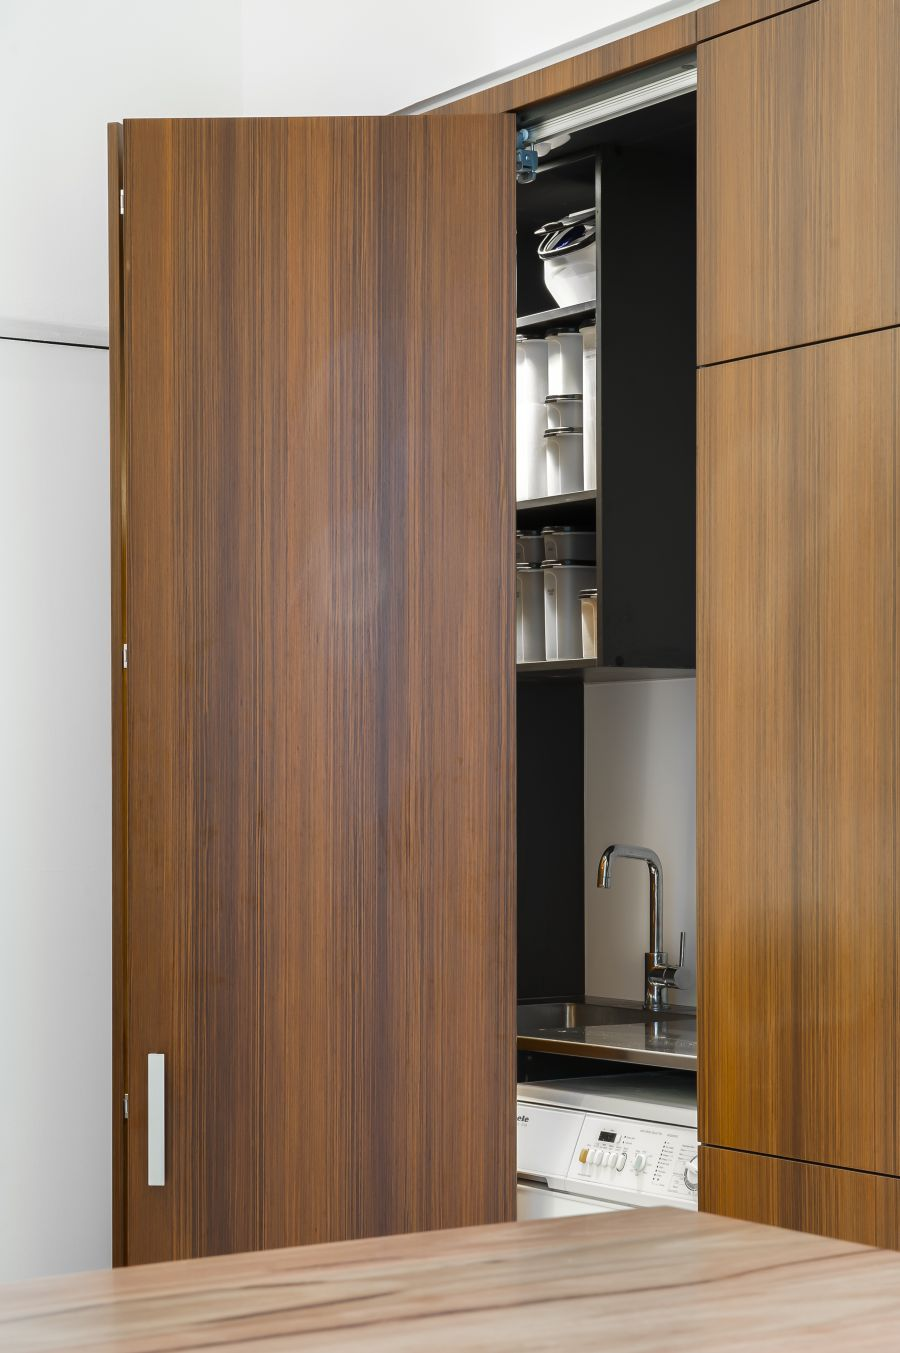 Landry space idea in a small kitchen